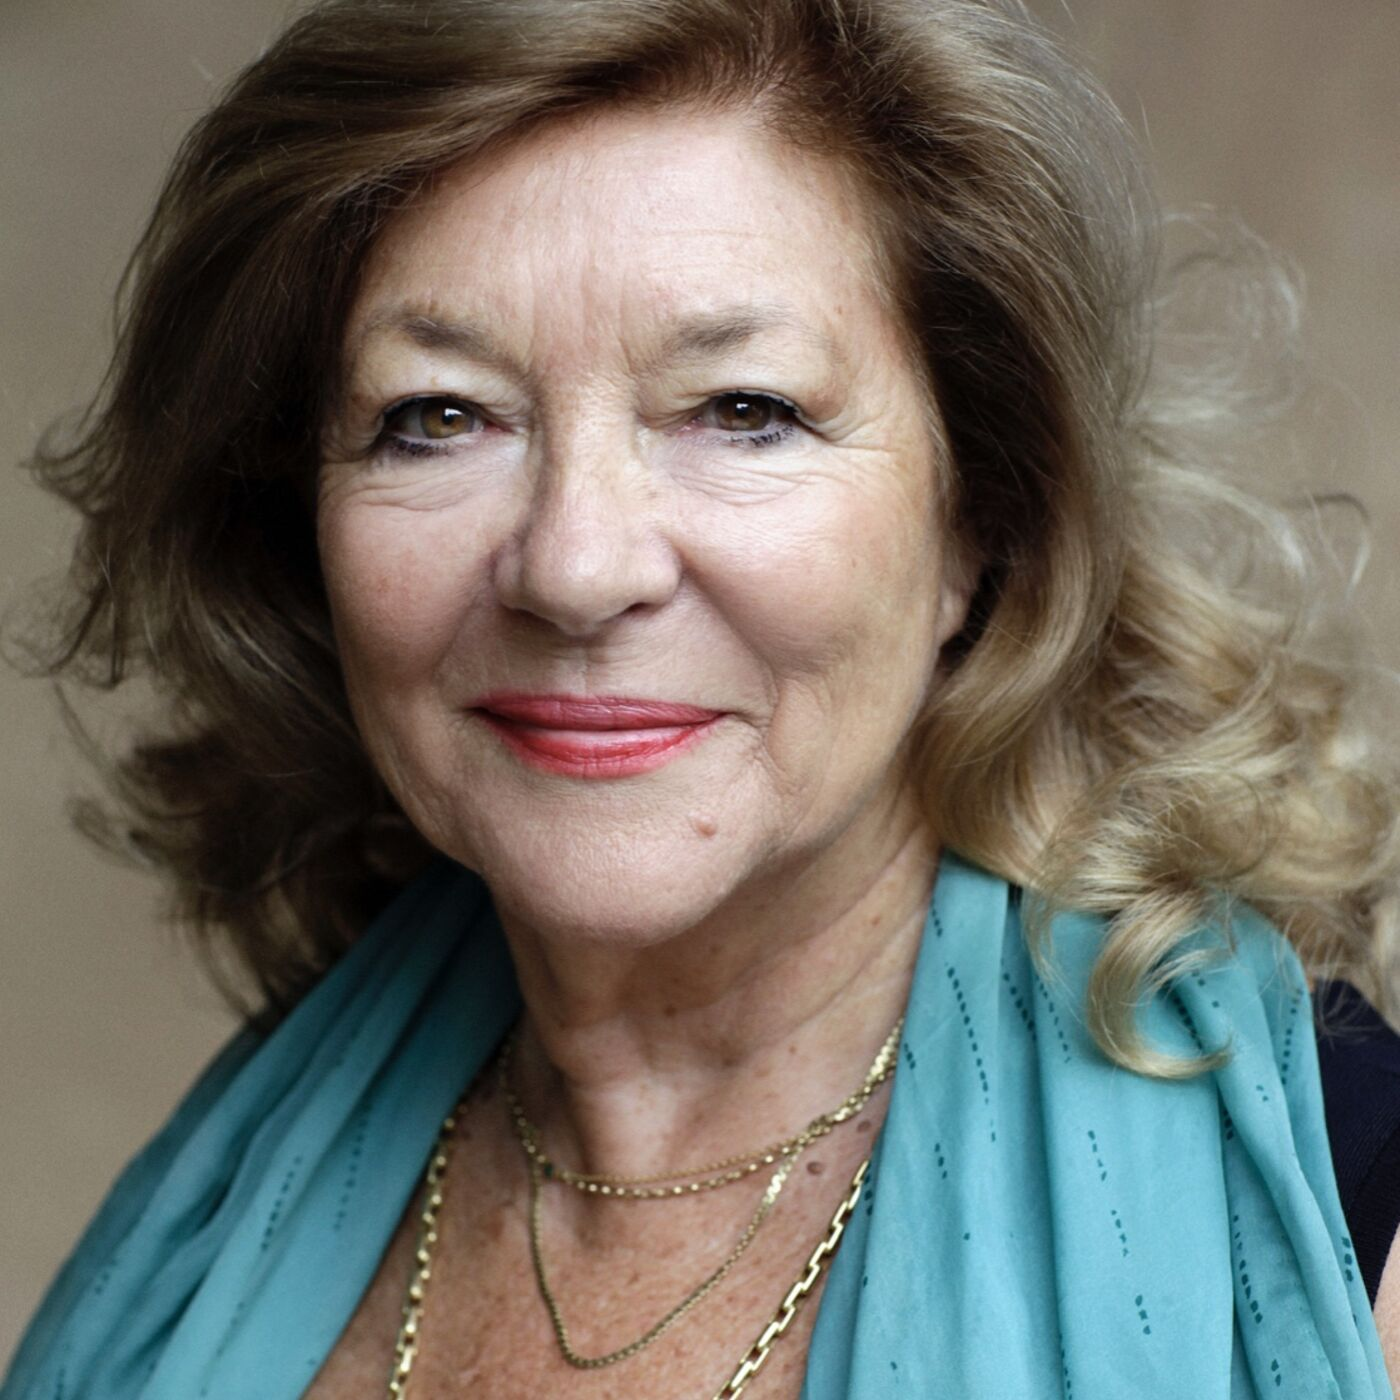 All Creatures Great and Small star Carol Drinkwater compares the iconic original with the Channel 5 re-boot